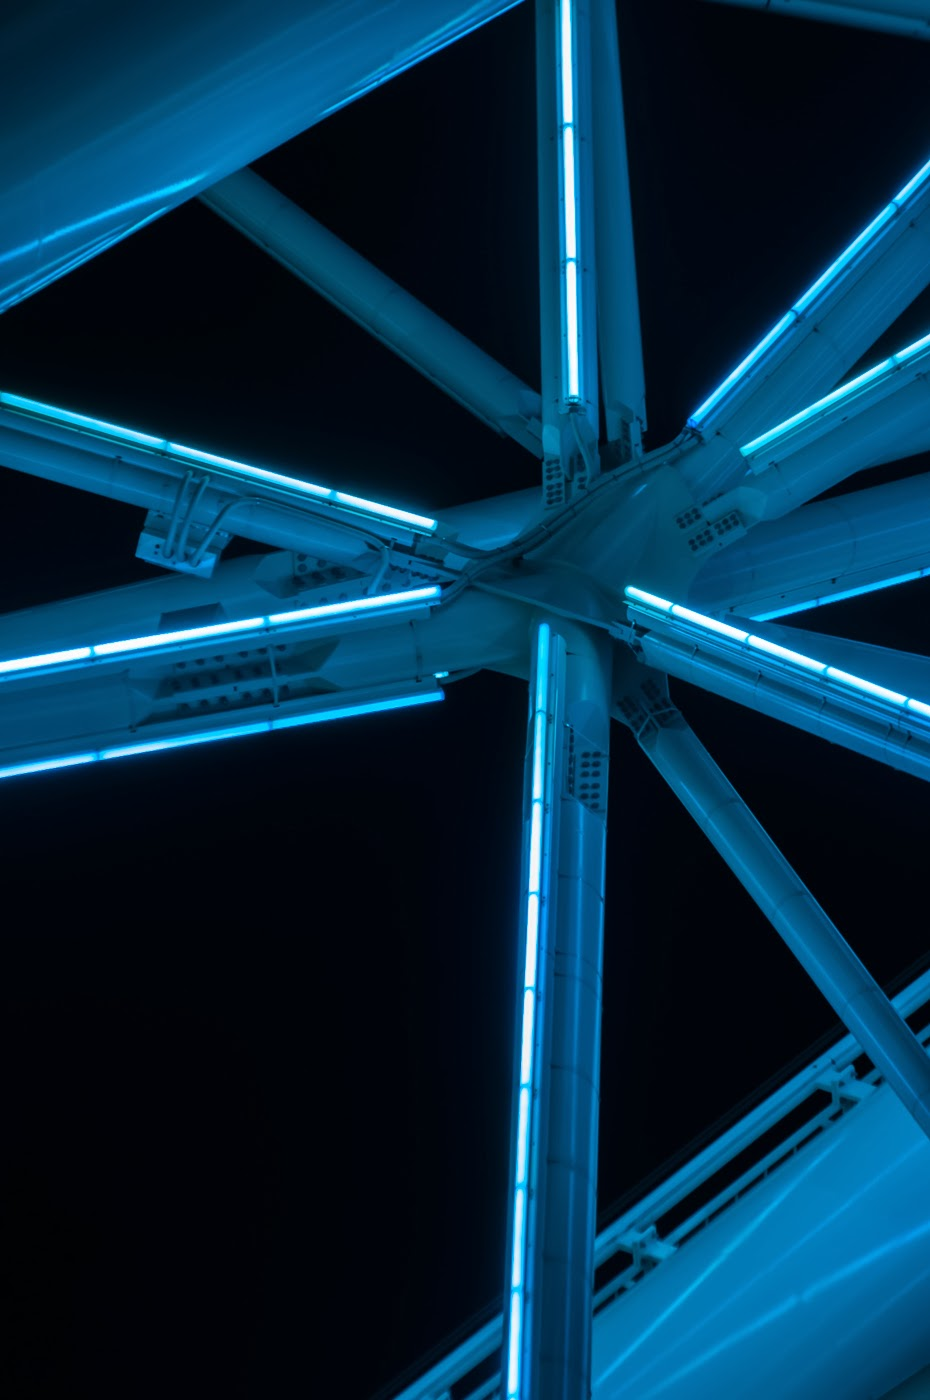 Southern star, Melbourne star, wheel, observatory wheel, Australia, sanoyas rides, corporation, architecture, architectural, architects, abstract, abstractional, abstraction, Melbourne, ride, tim macauley, detail, steel, structure, star, arup